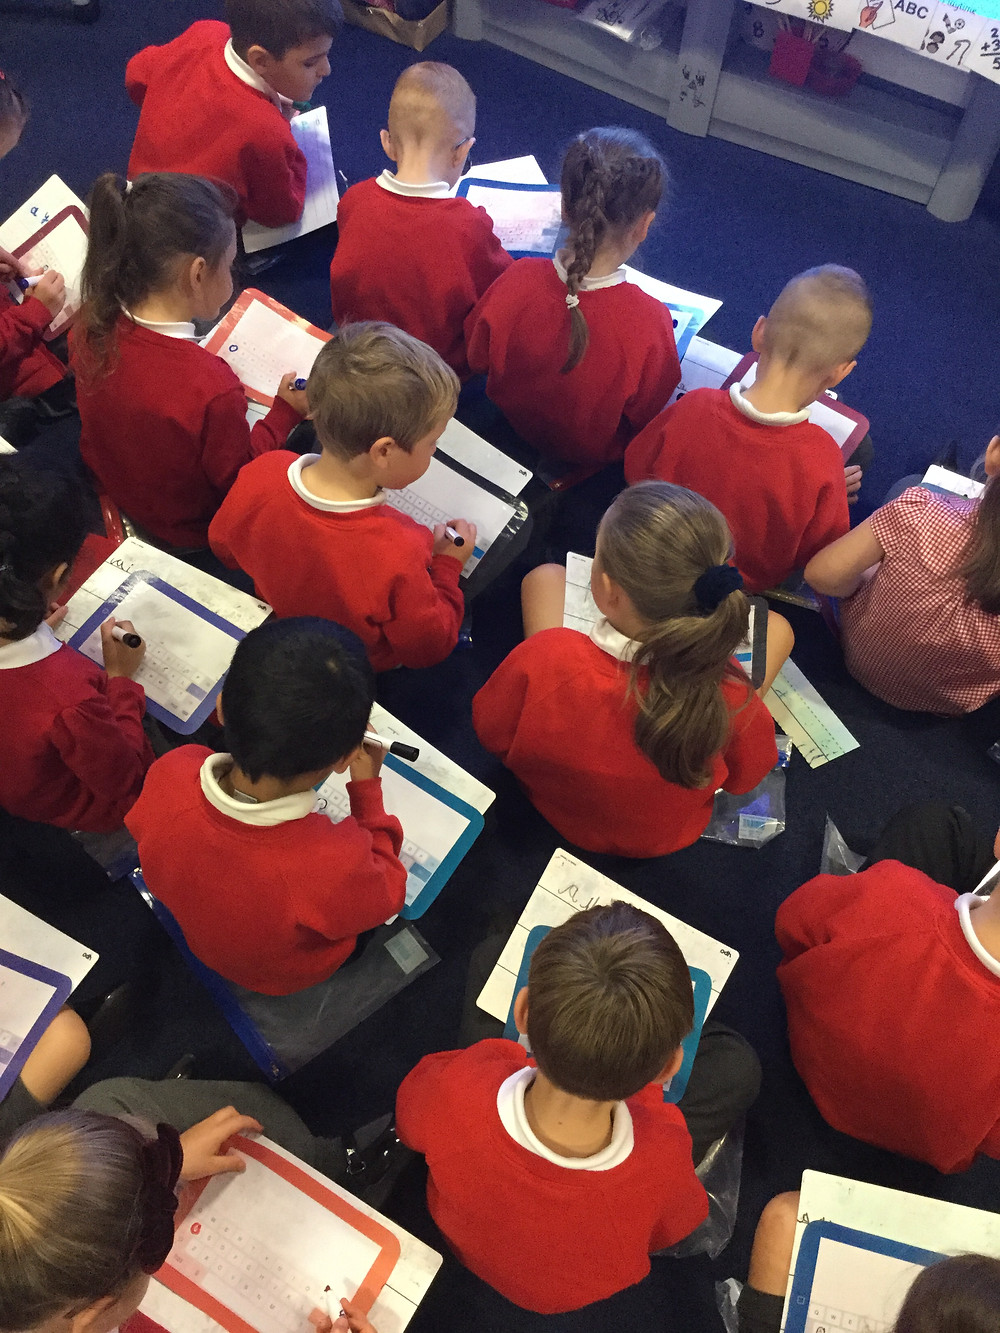 Year 1 enjoyed writing words during phonics on their Ipads.